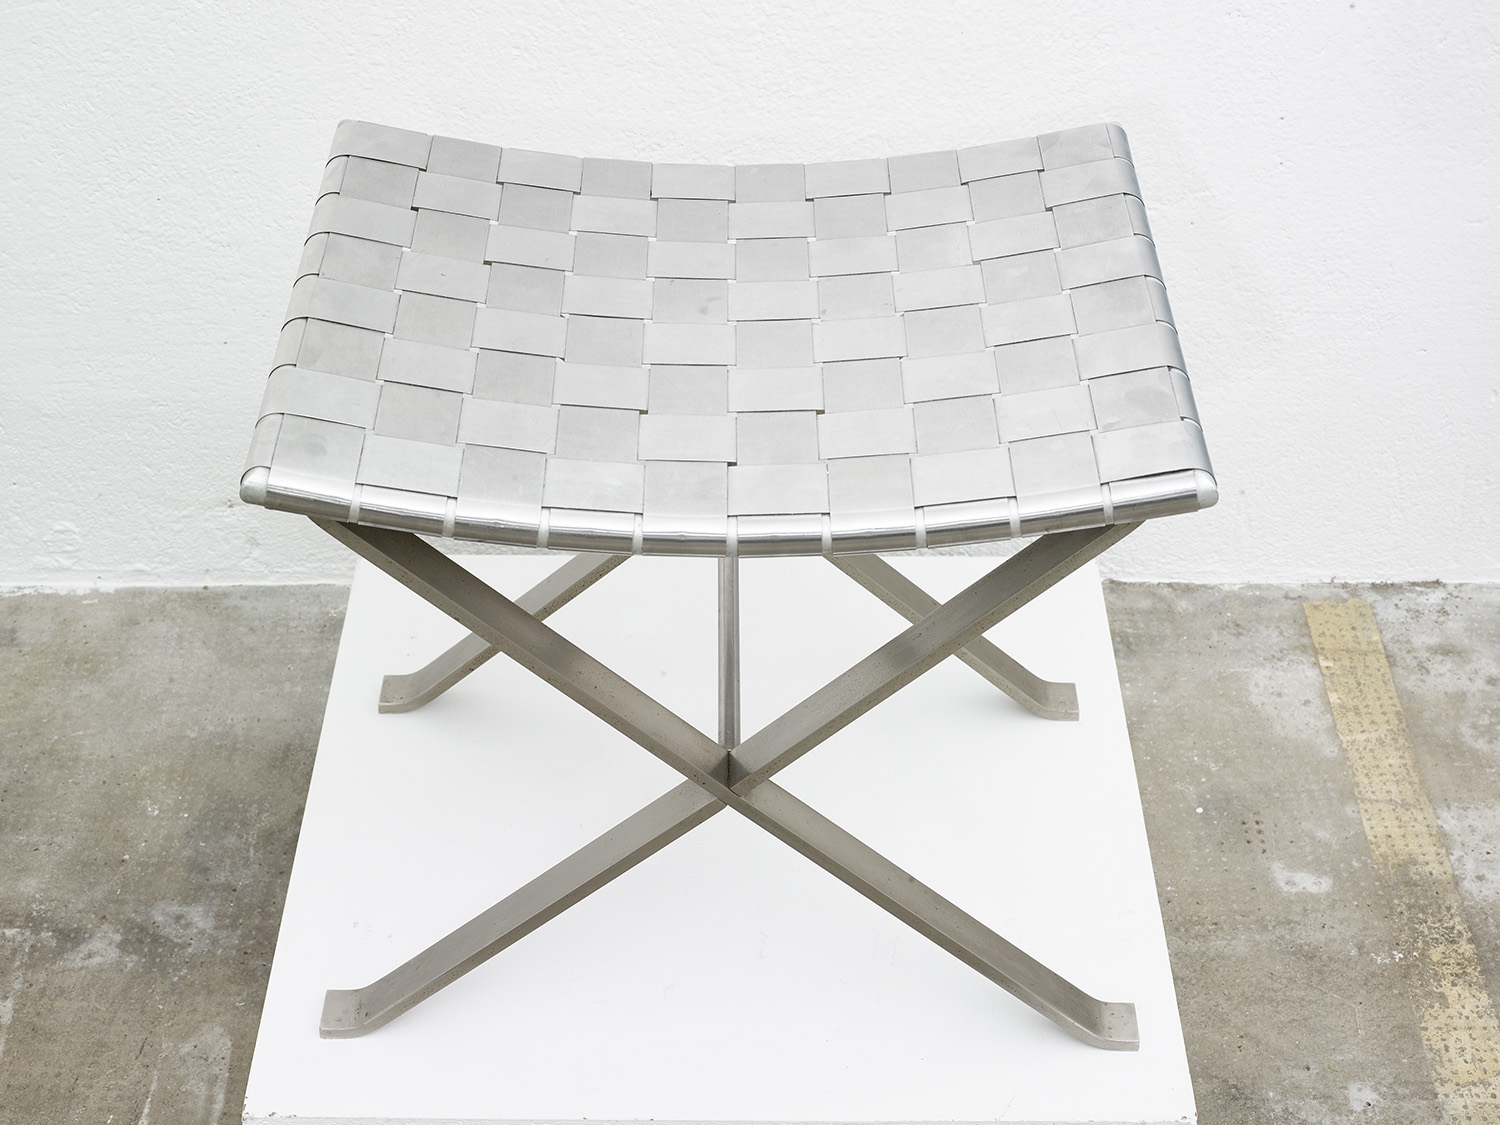 stool-in-stainless-steel-by-michel-pigneres-1970-image-01